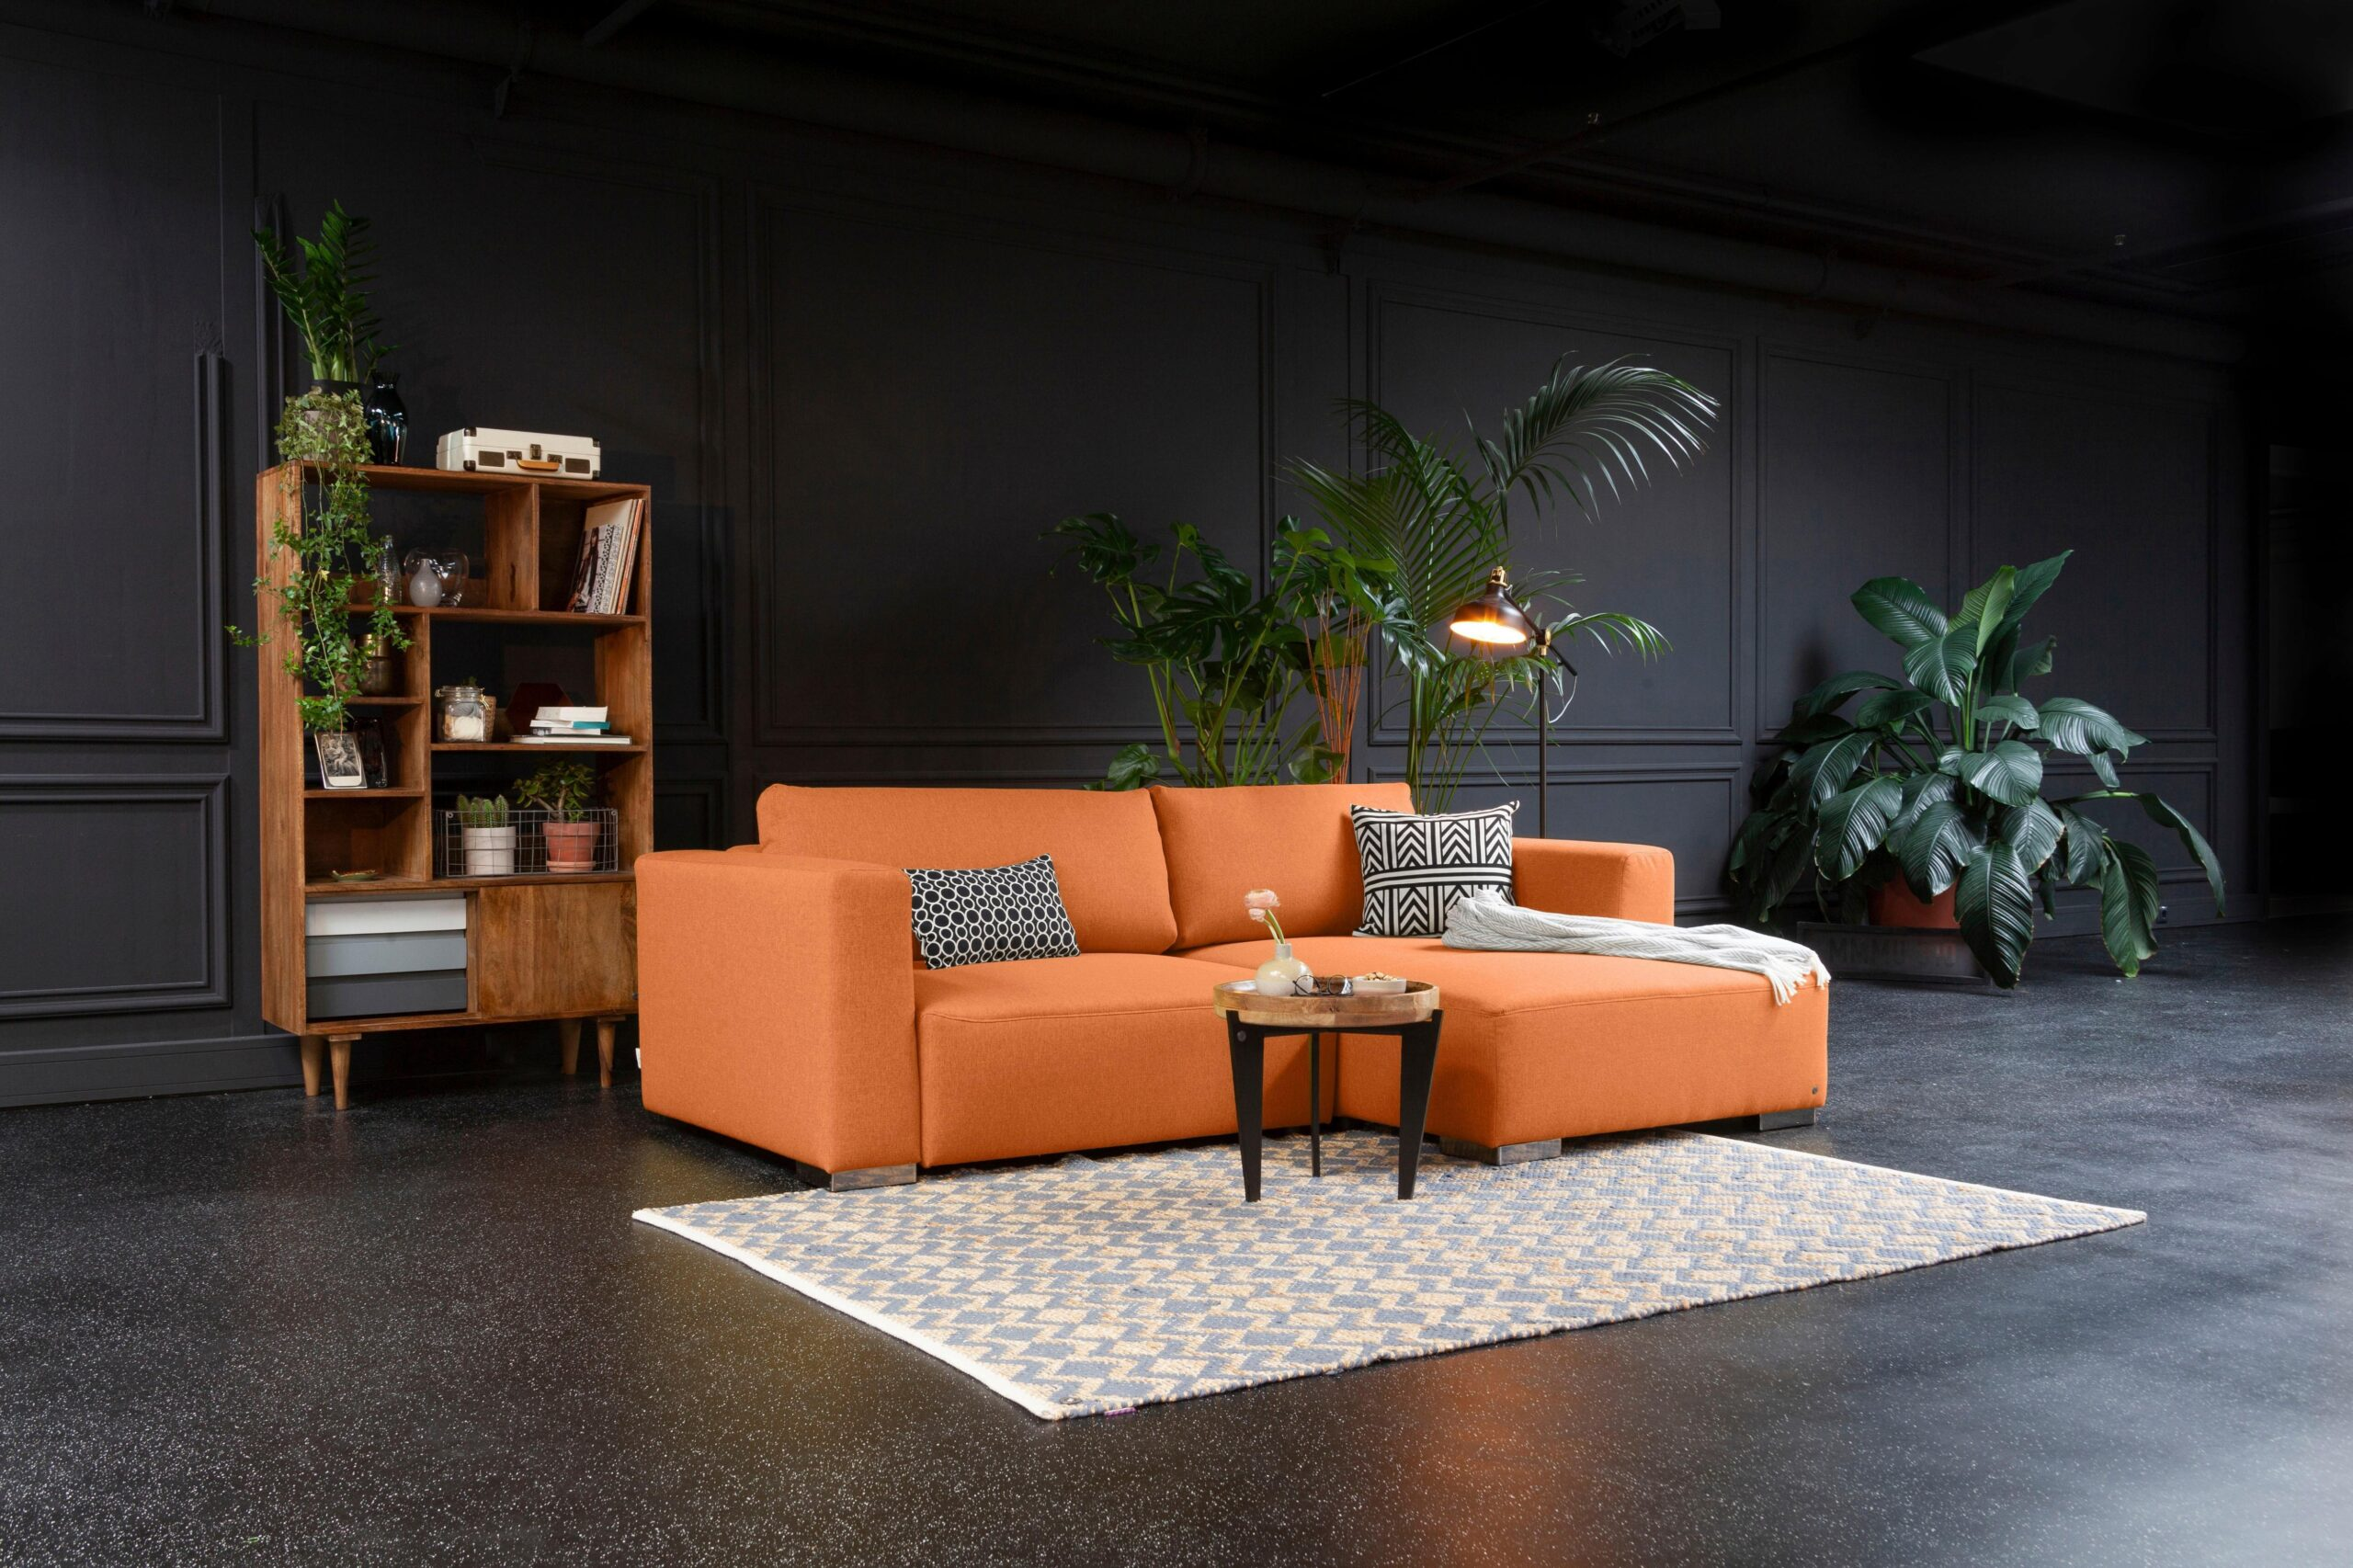 Full Size of Sofa Tom Tailor Elements Heaven Casual Xl Otto Couch S Style Colors Big Nordic Pure Chic Ecksofa Auf Rechnung Kaufen Baur Lila Ewald Schillig Xxl Kissen Sofa Sofa Tom Tailor